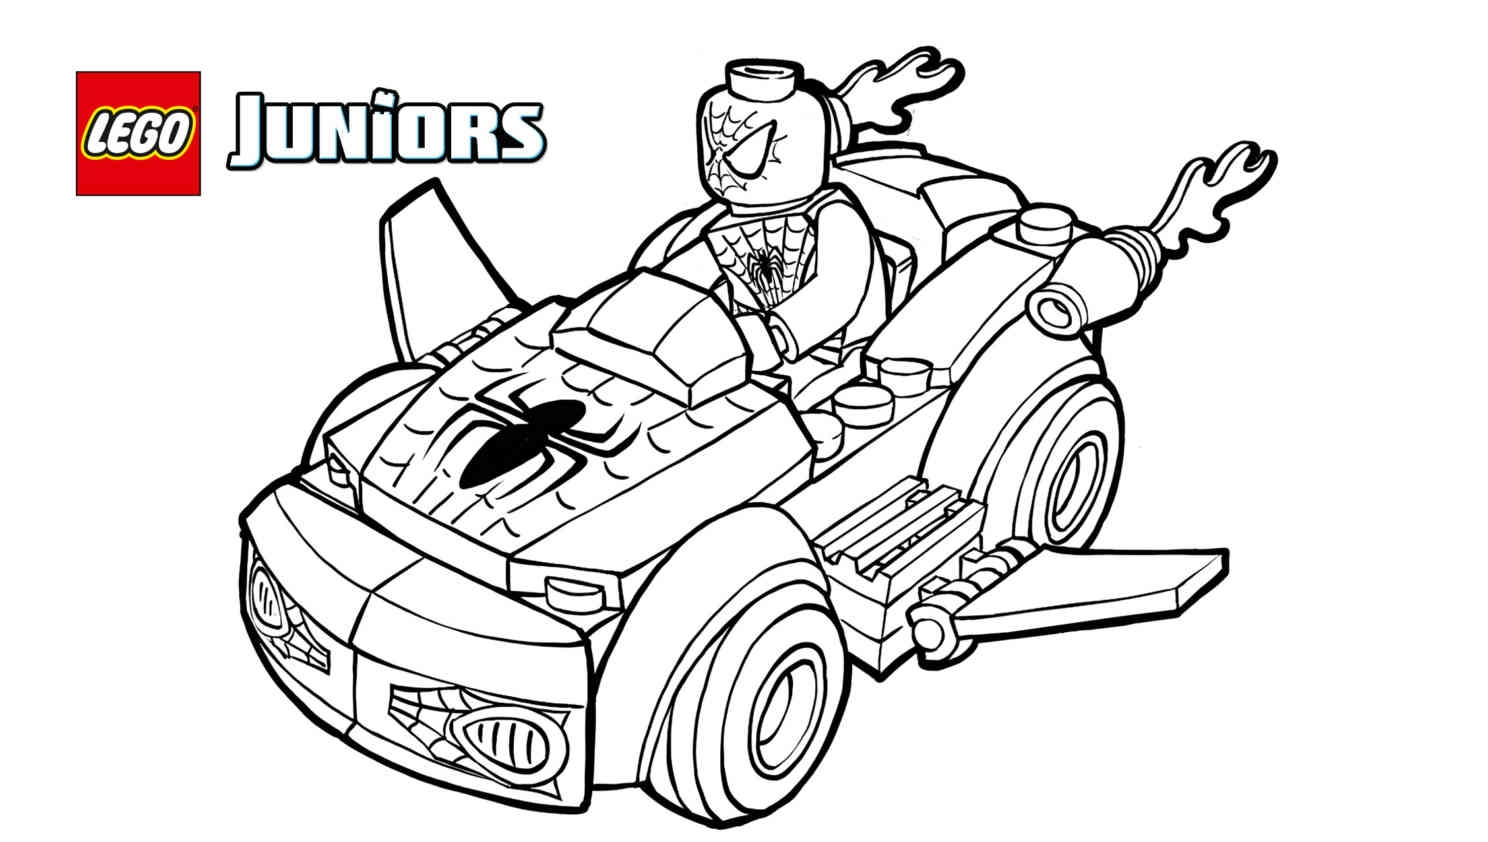 Lego Spiderman Coloring Pages Gallery Collection Of Lego Dimensions Coloring Pages Collection Page Ninja Grig3 Printable